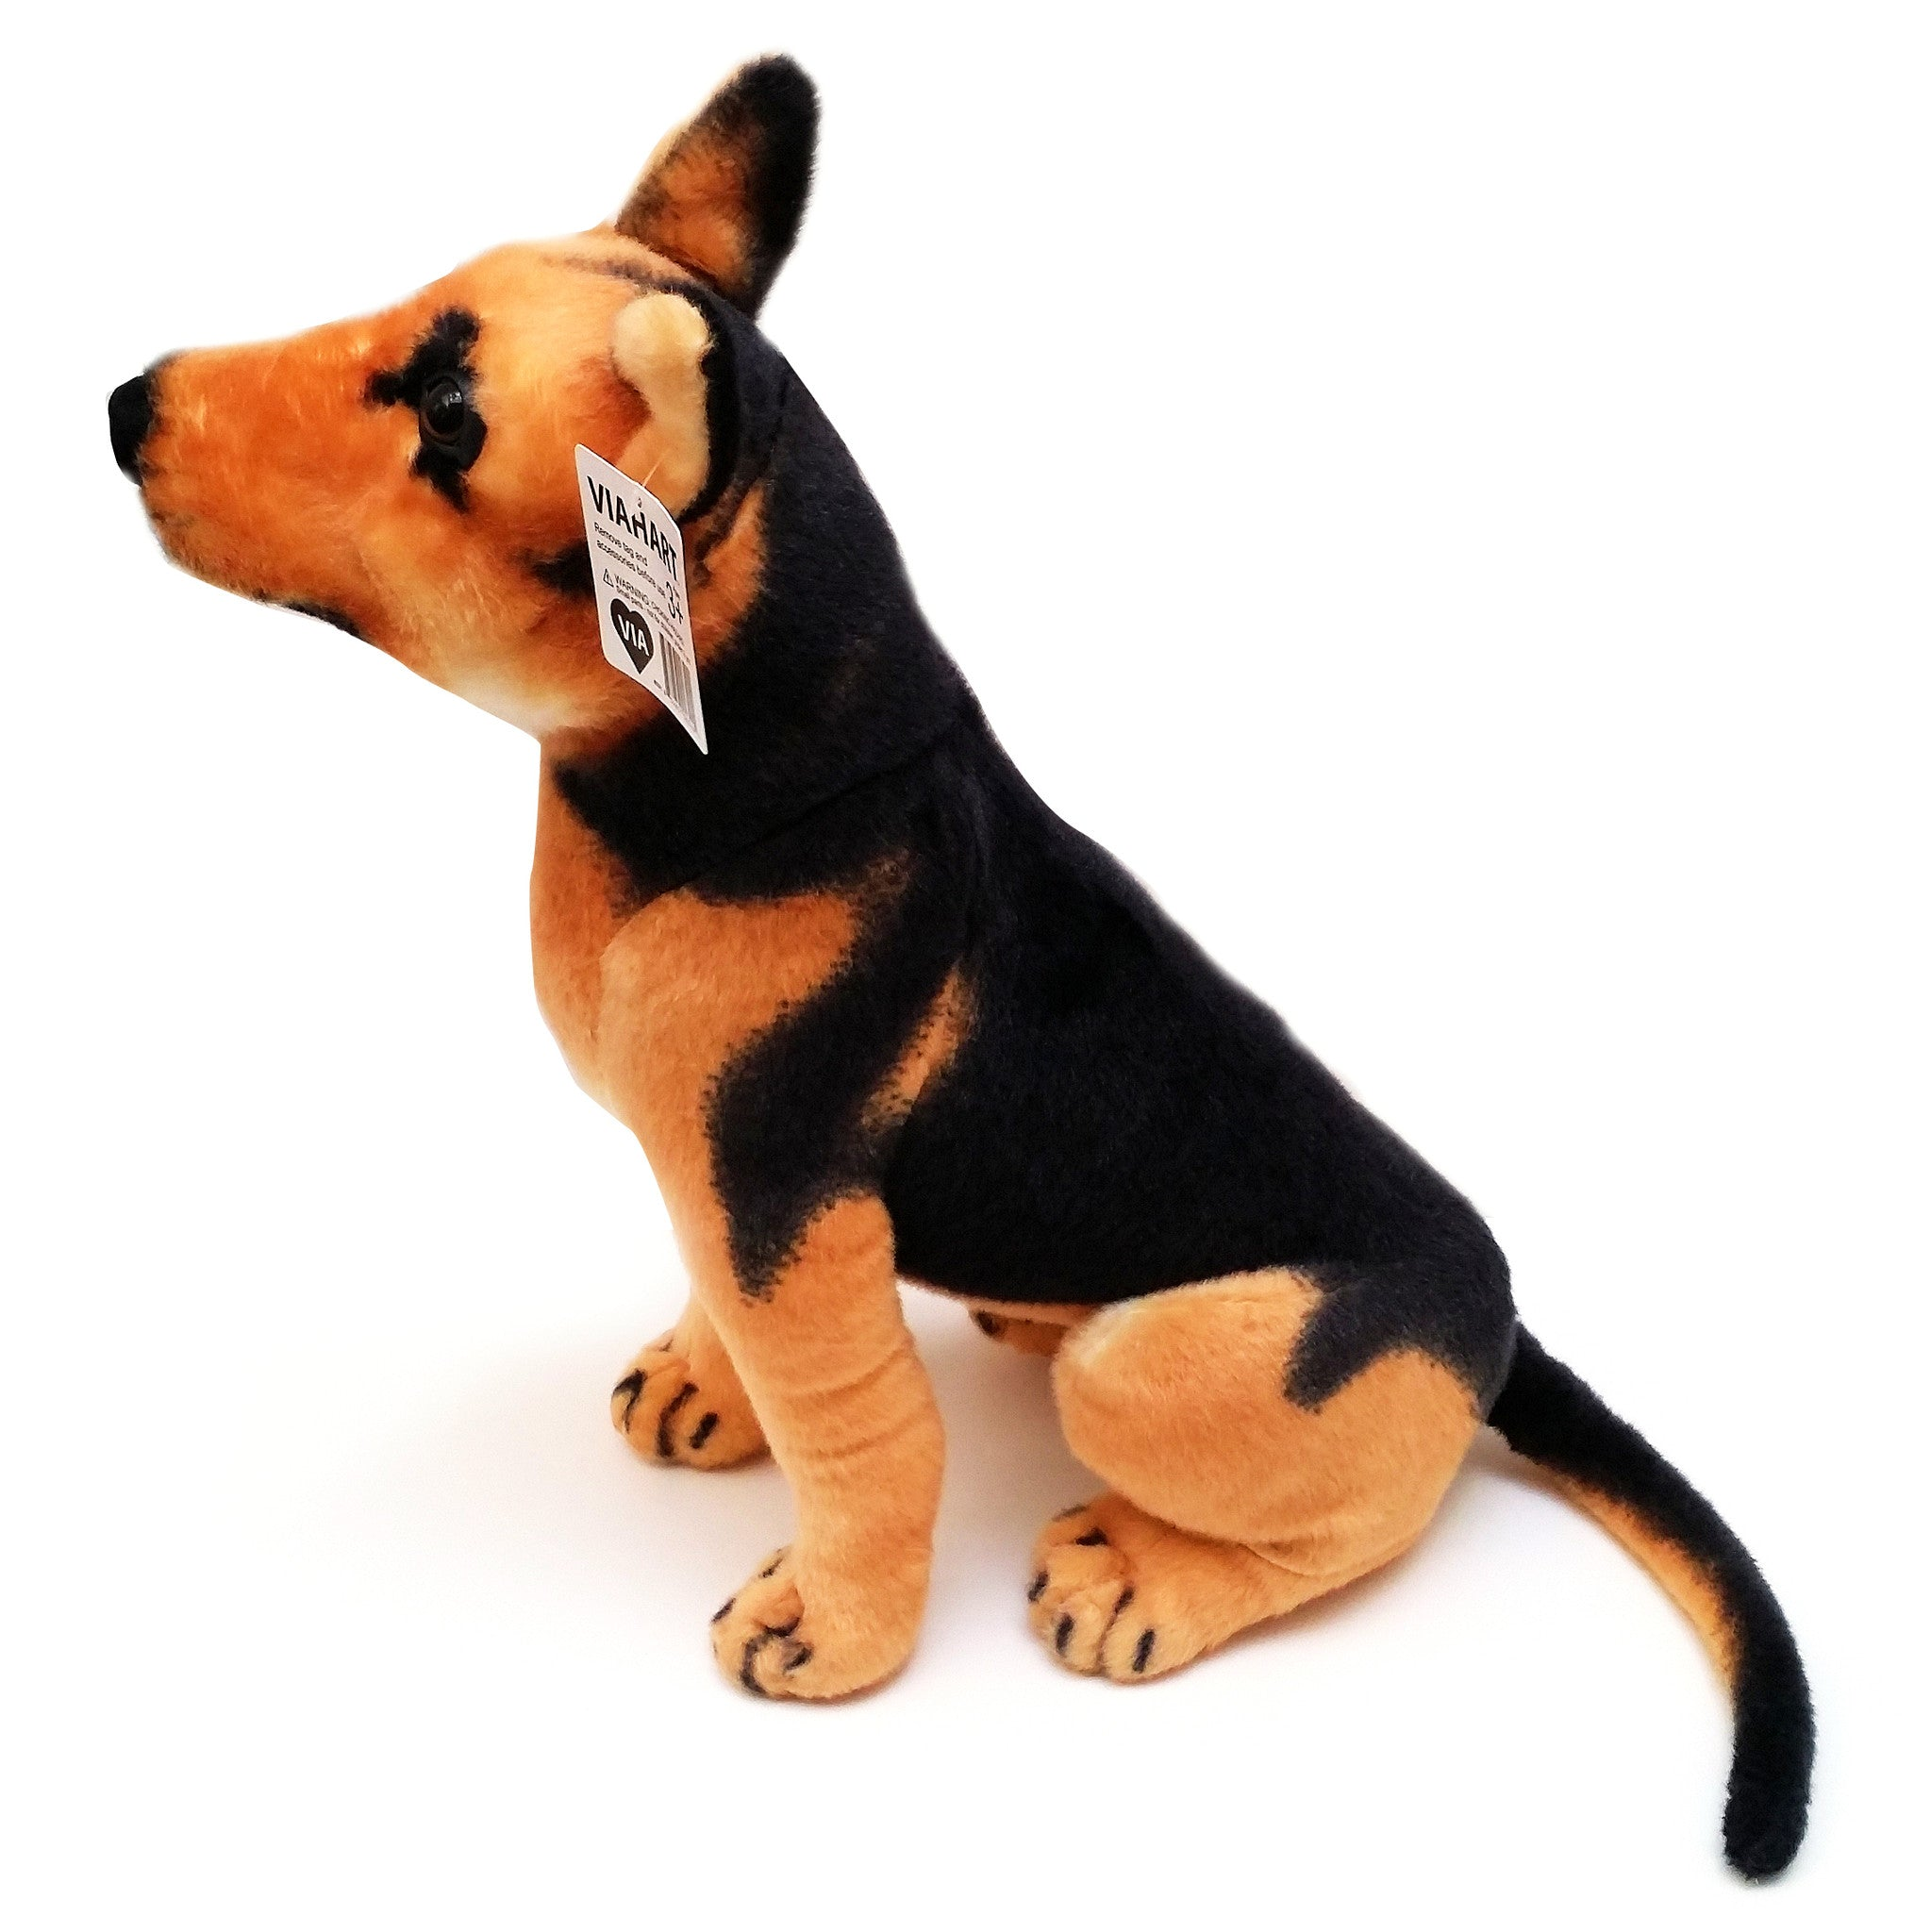 VIAHART 20 Inch German Shepherd Stuffed Animal Plush - Gunther the German Shepherd